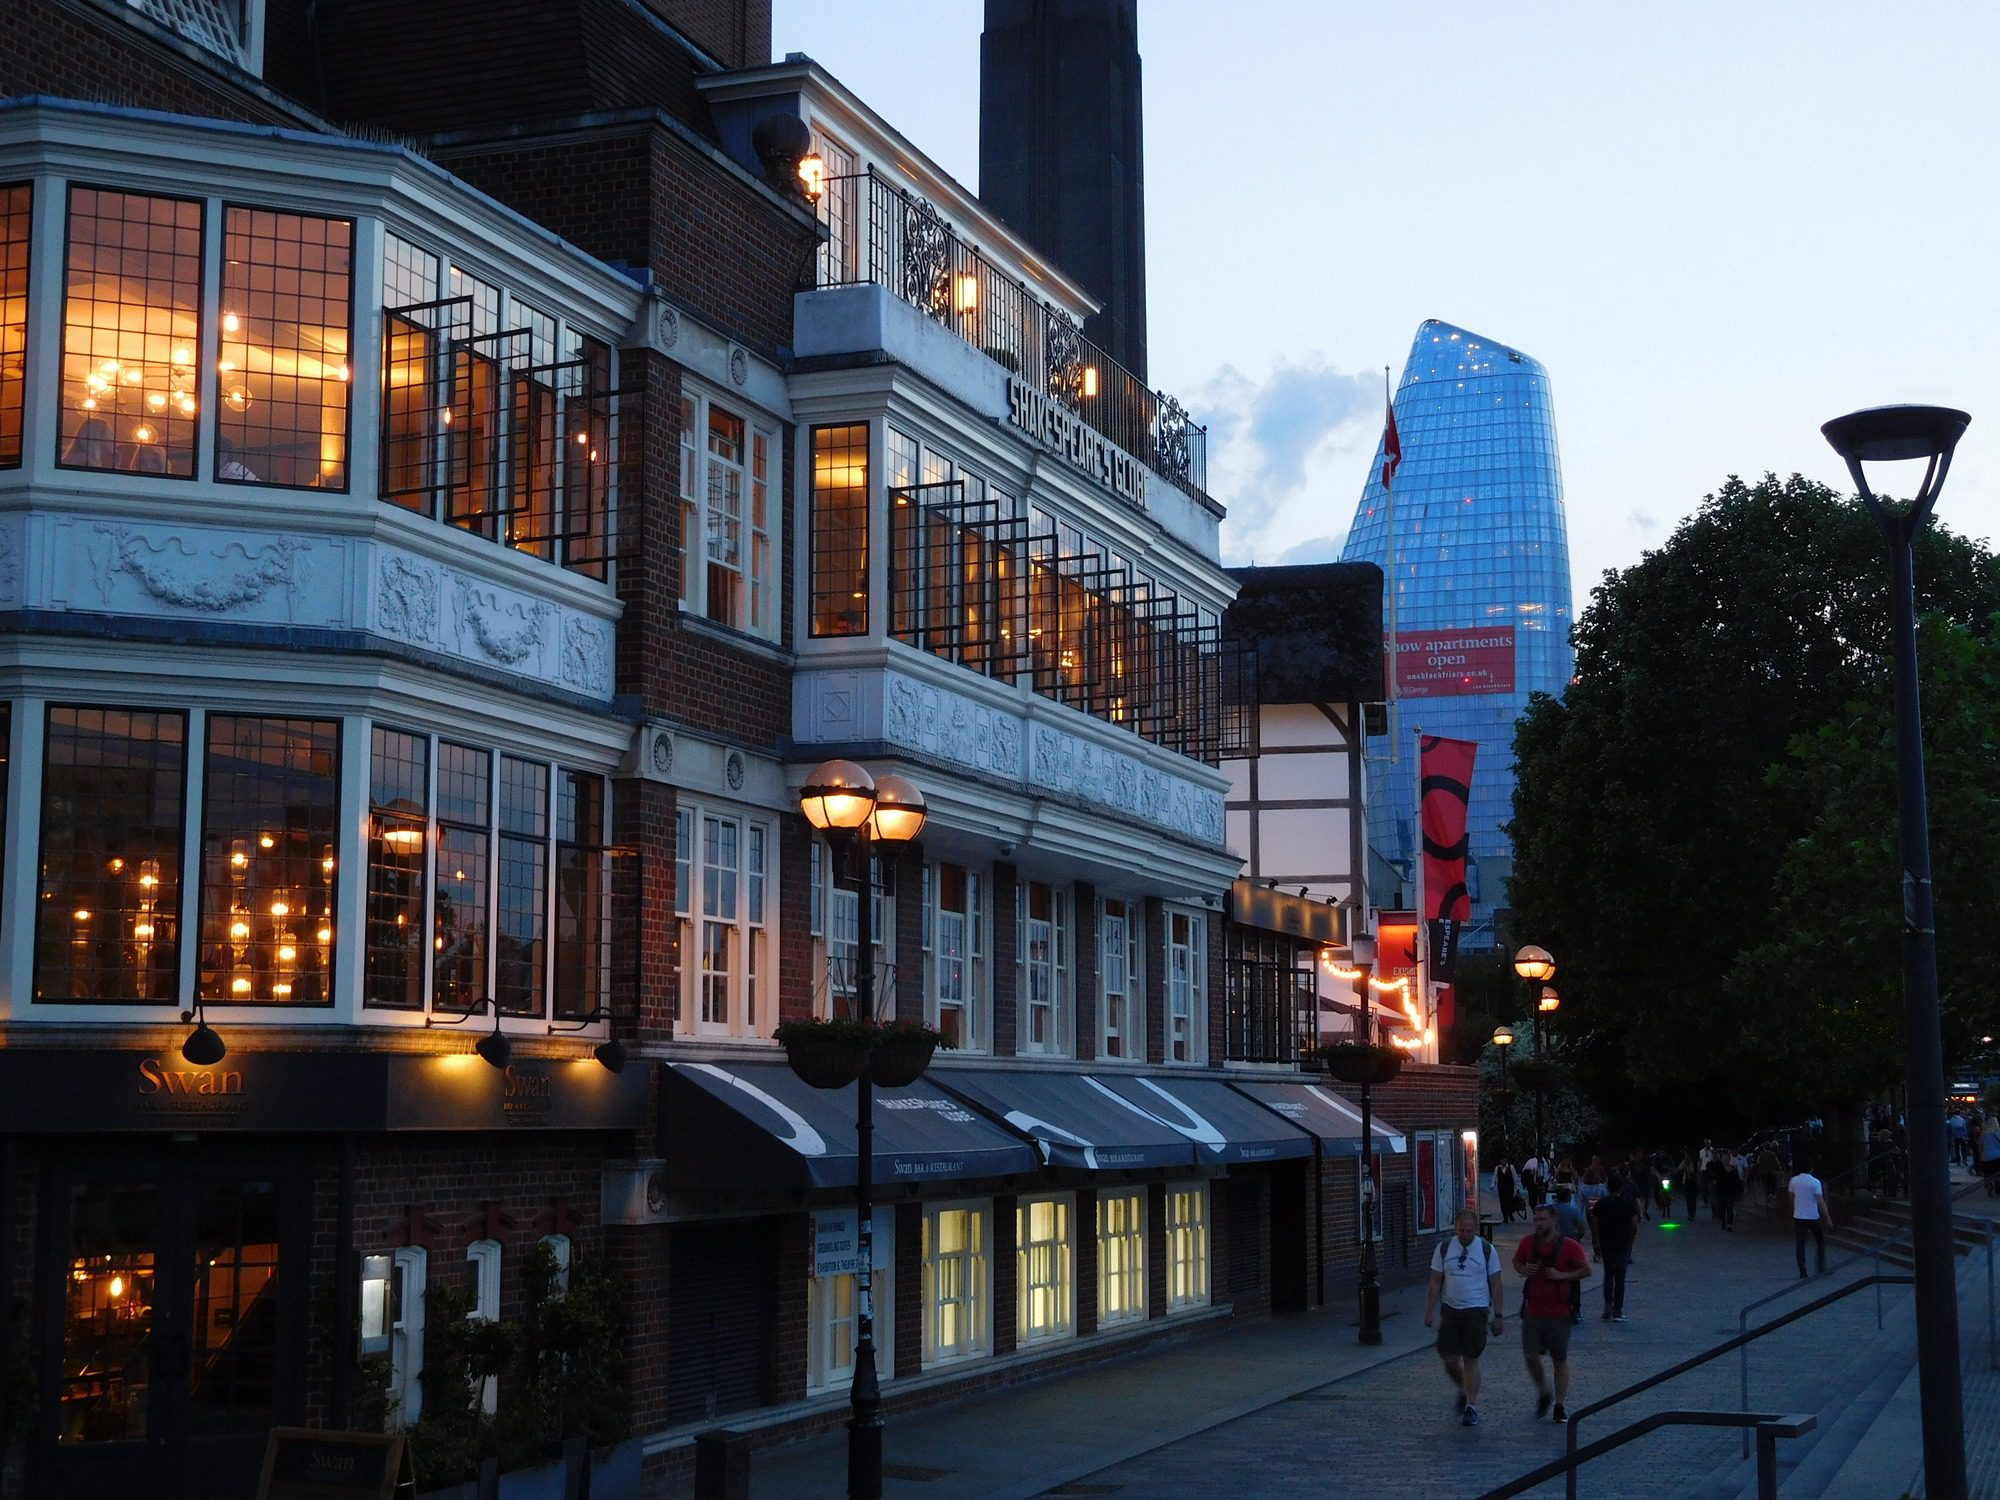 Abends am Themseufer in London